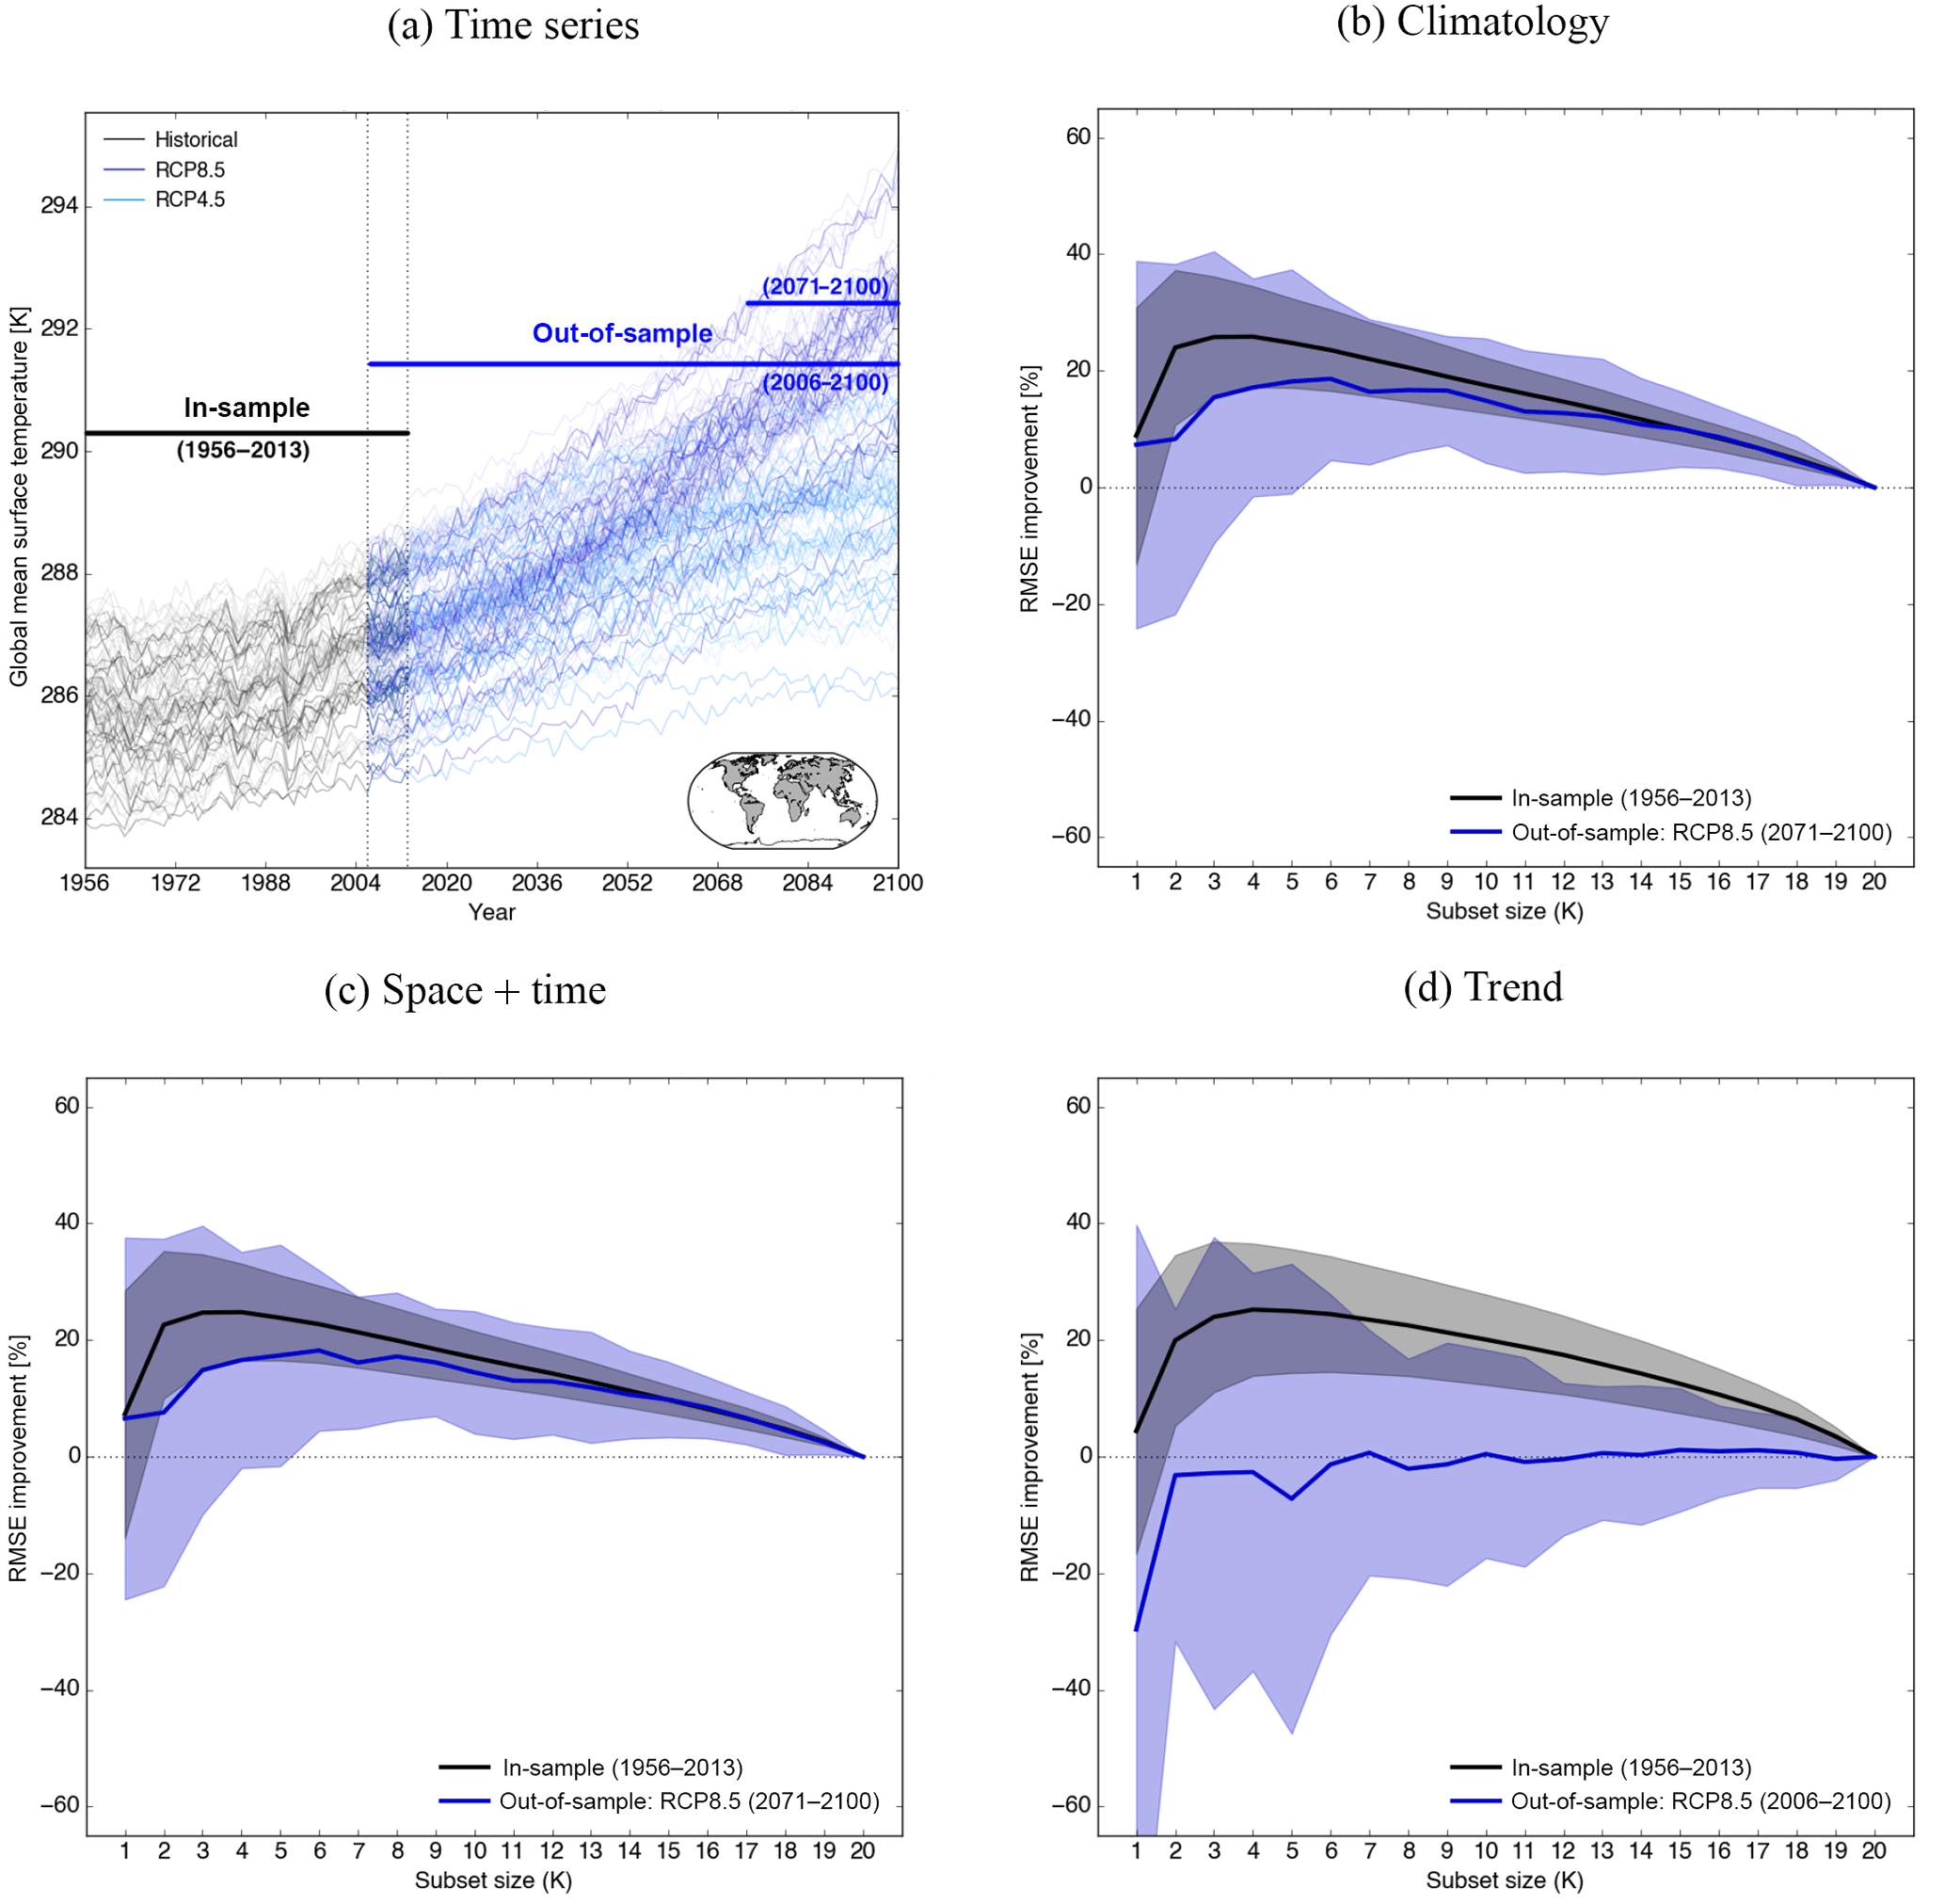 ESD - Selecting a climate model subset to optimise key ensemble